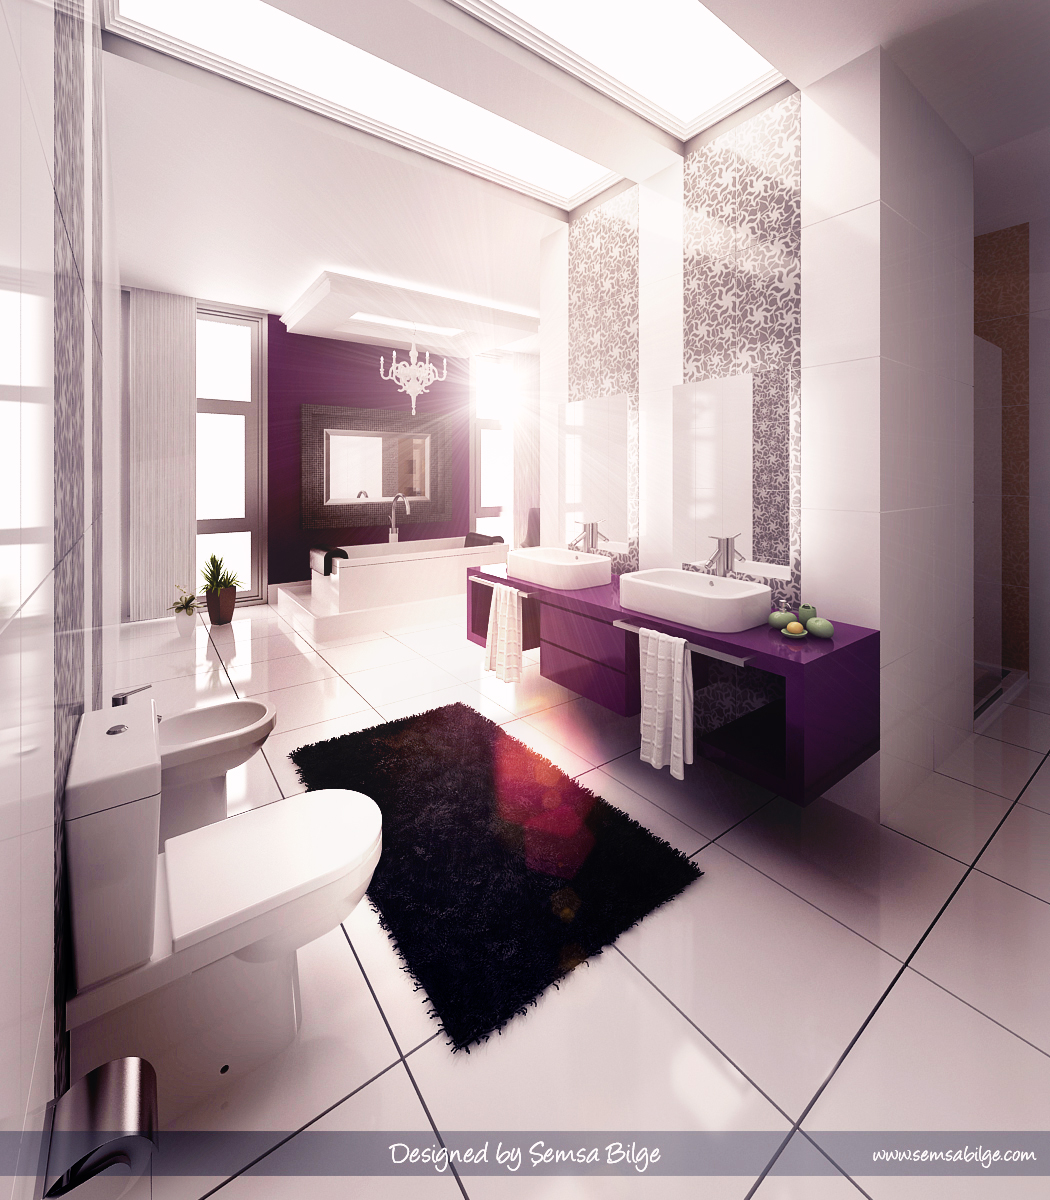 Beautiful bathroom designs ideas interior design for Bathroom designs gallery